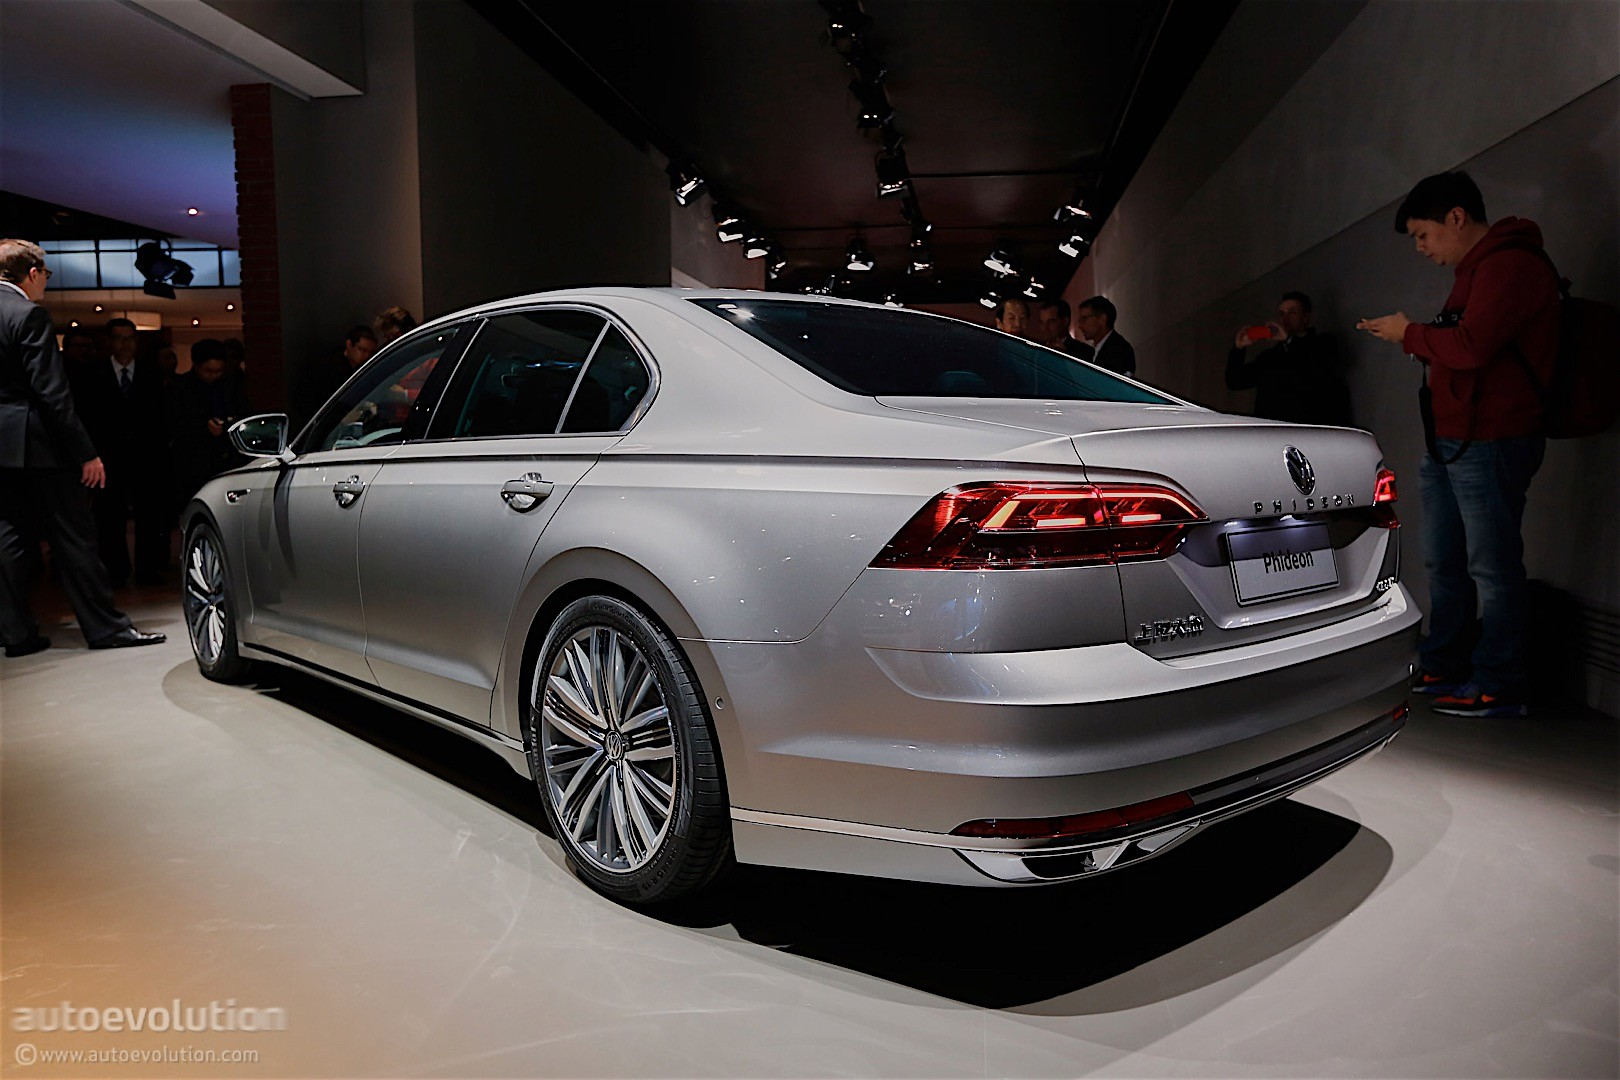 2016 Volkswagen Phideon Revealed to Europeans, Will Be Sold in China ...